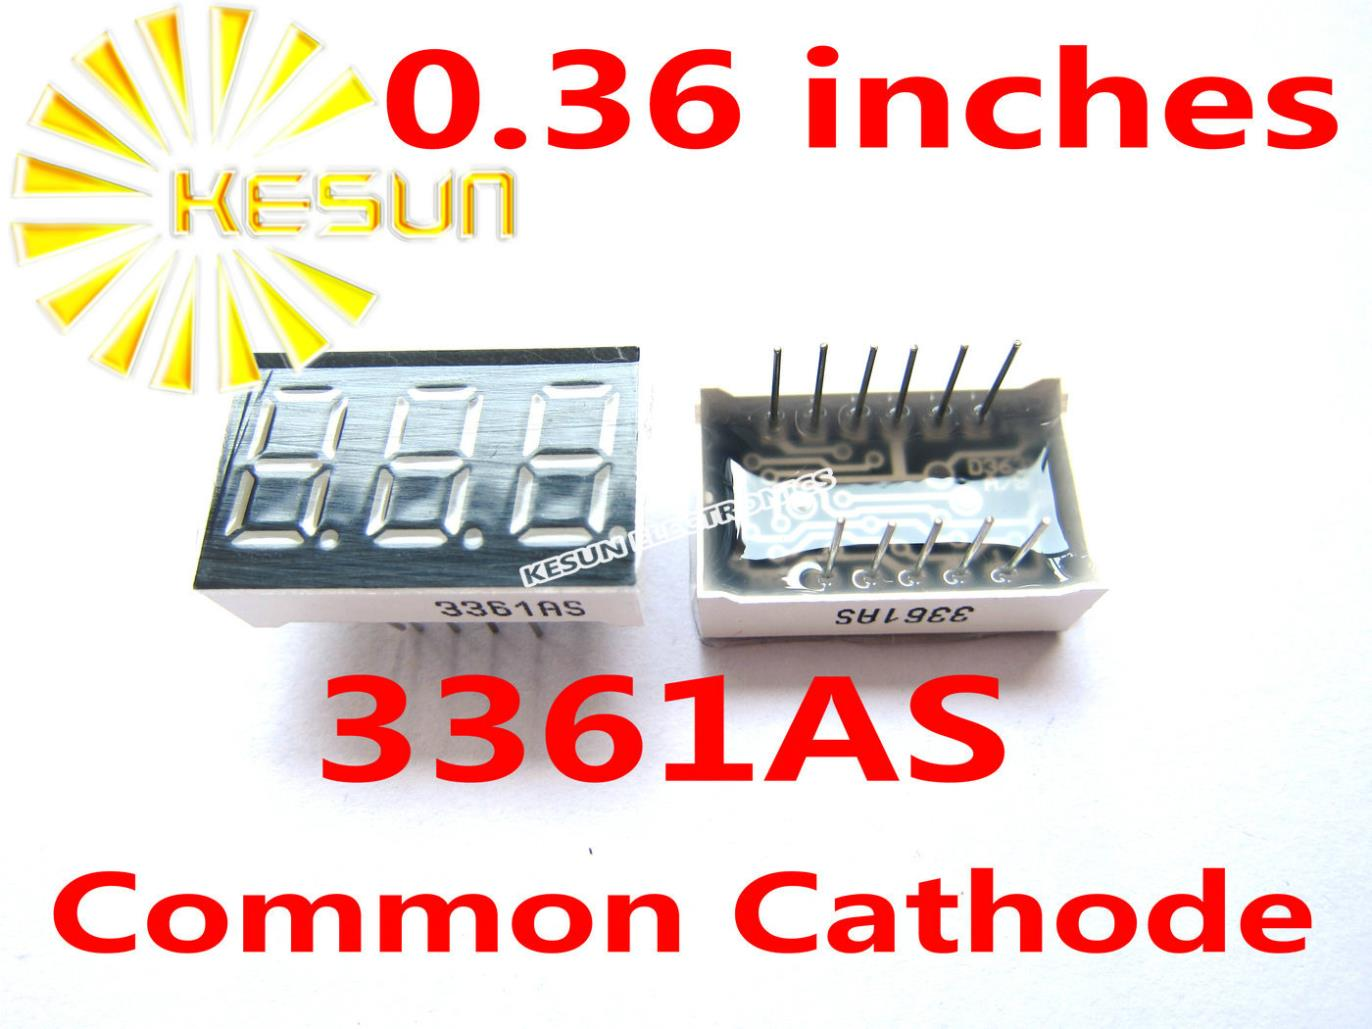 100PCS X 0.36 Inches Red Green Blue 3 Digital Tube LED Display Module 3361AS 3361BS 3361AG 3361BG 3361AB 3361BB